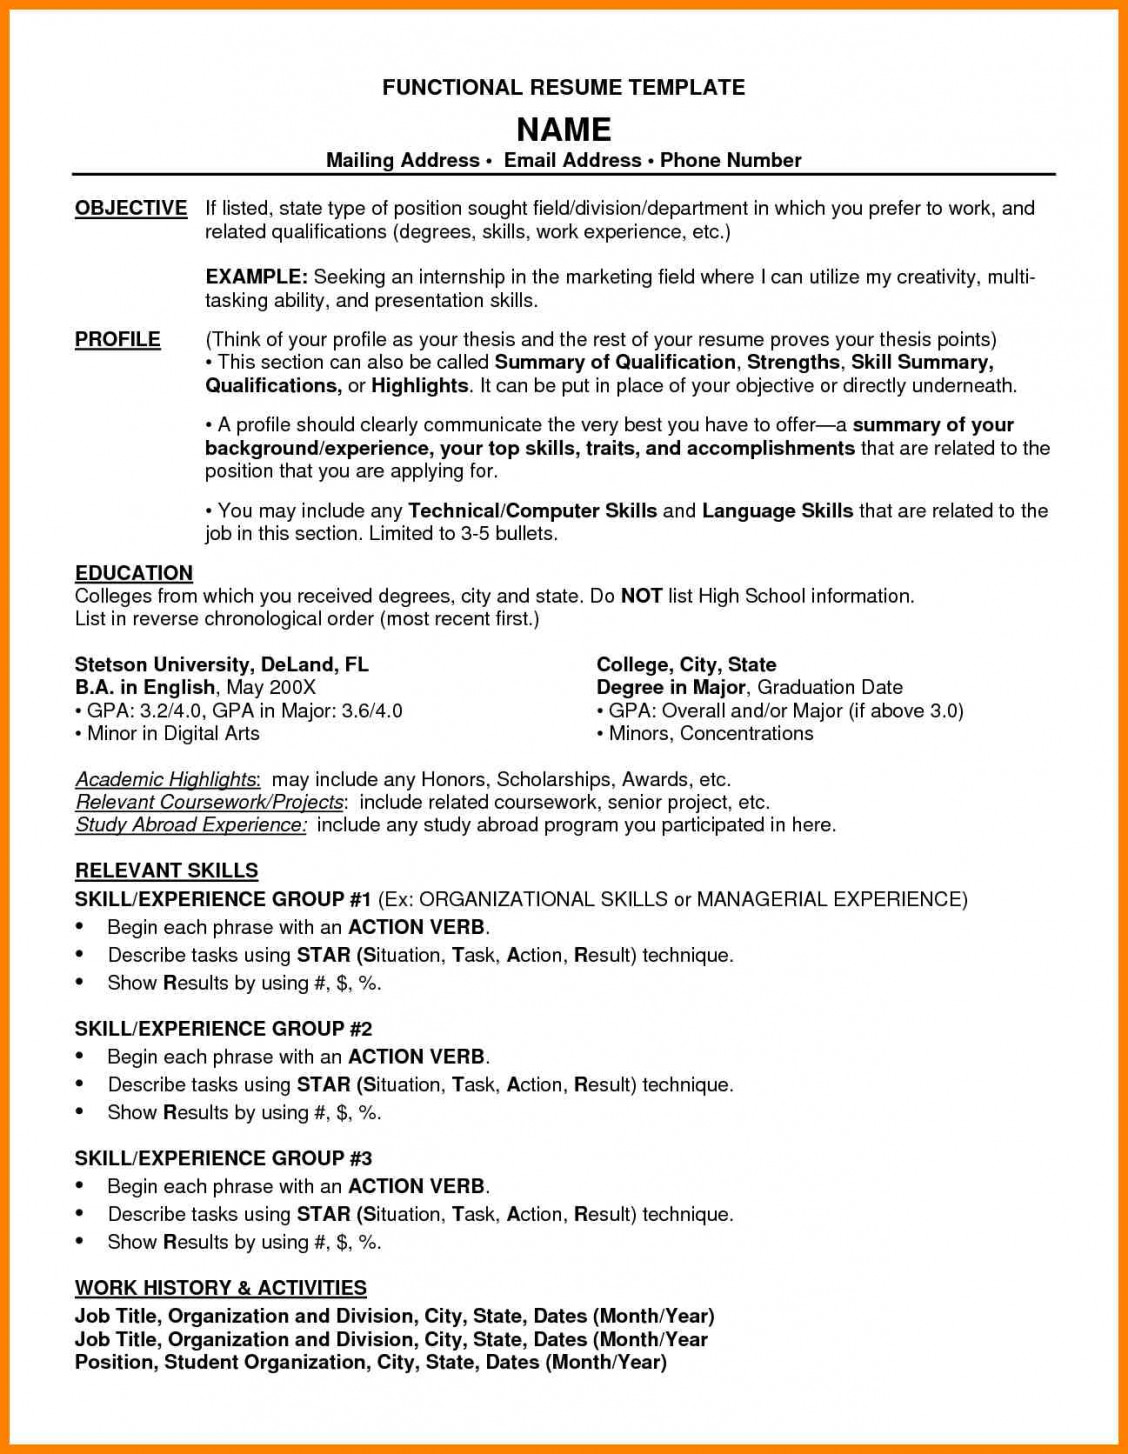 word combination resume template builder example sample pdf letter adress icu technical Resume Combination Resume Sample